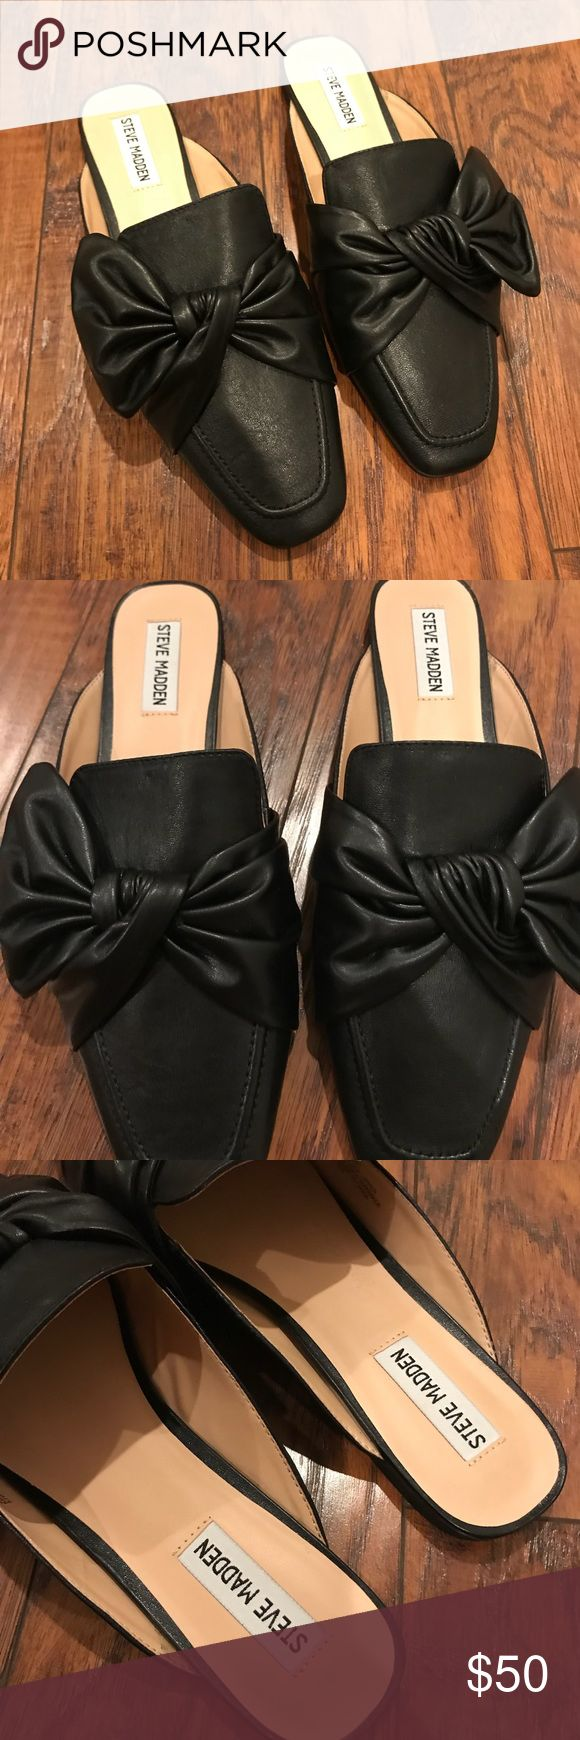 STEVE MADDEN Loafers! NEW Steve Madden Loafers with bow detail. These fit me a tad too small and I'm so sad to see them go!  Leather upper With box Steve Madden Shoes Flats & Loafers